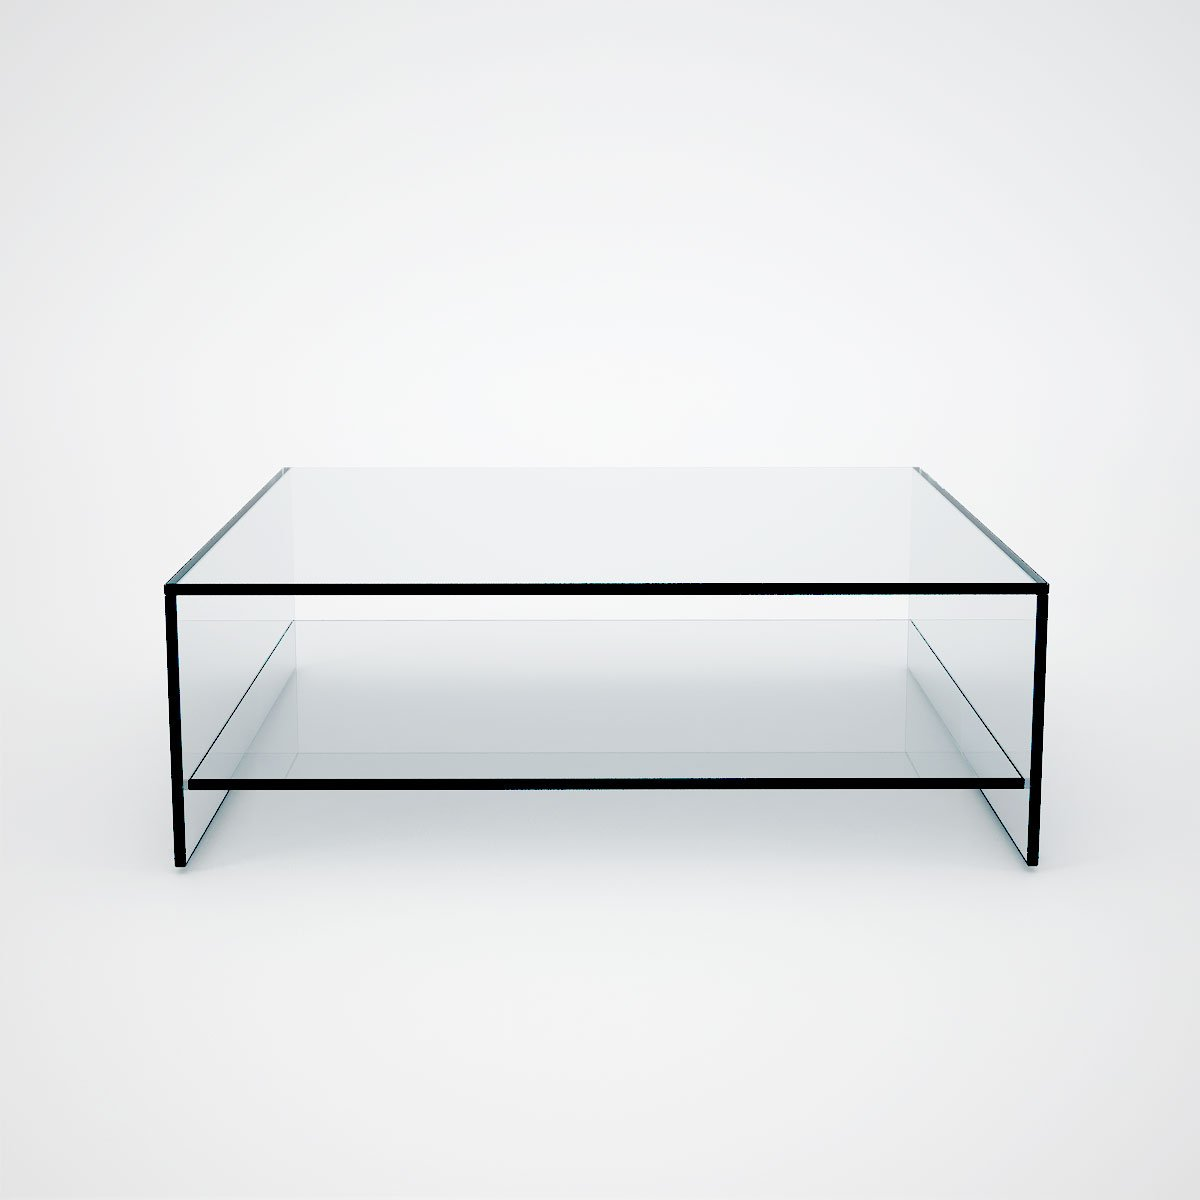 Judd Square Glass Coffee Table With Shelf Klarity Glass Furniture